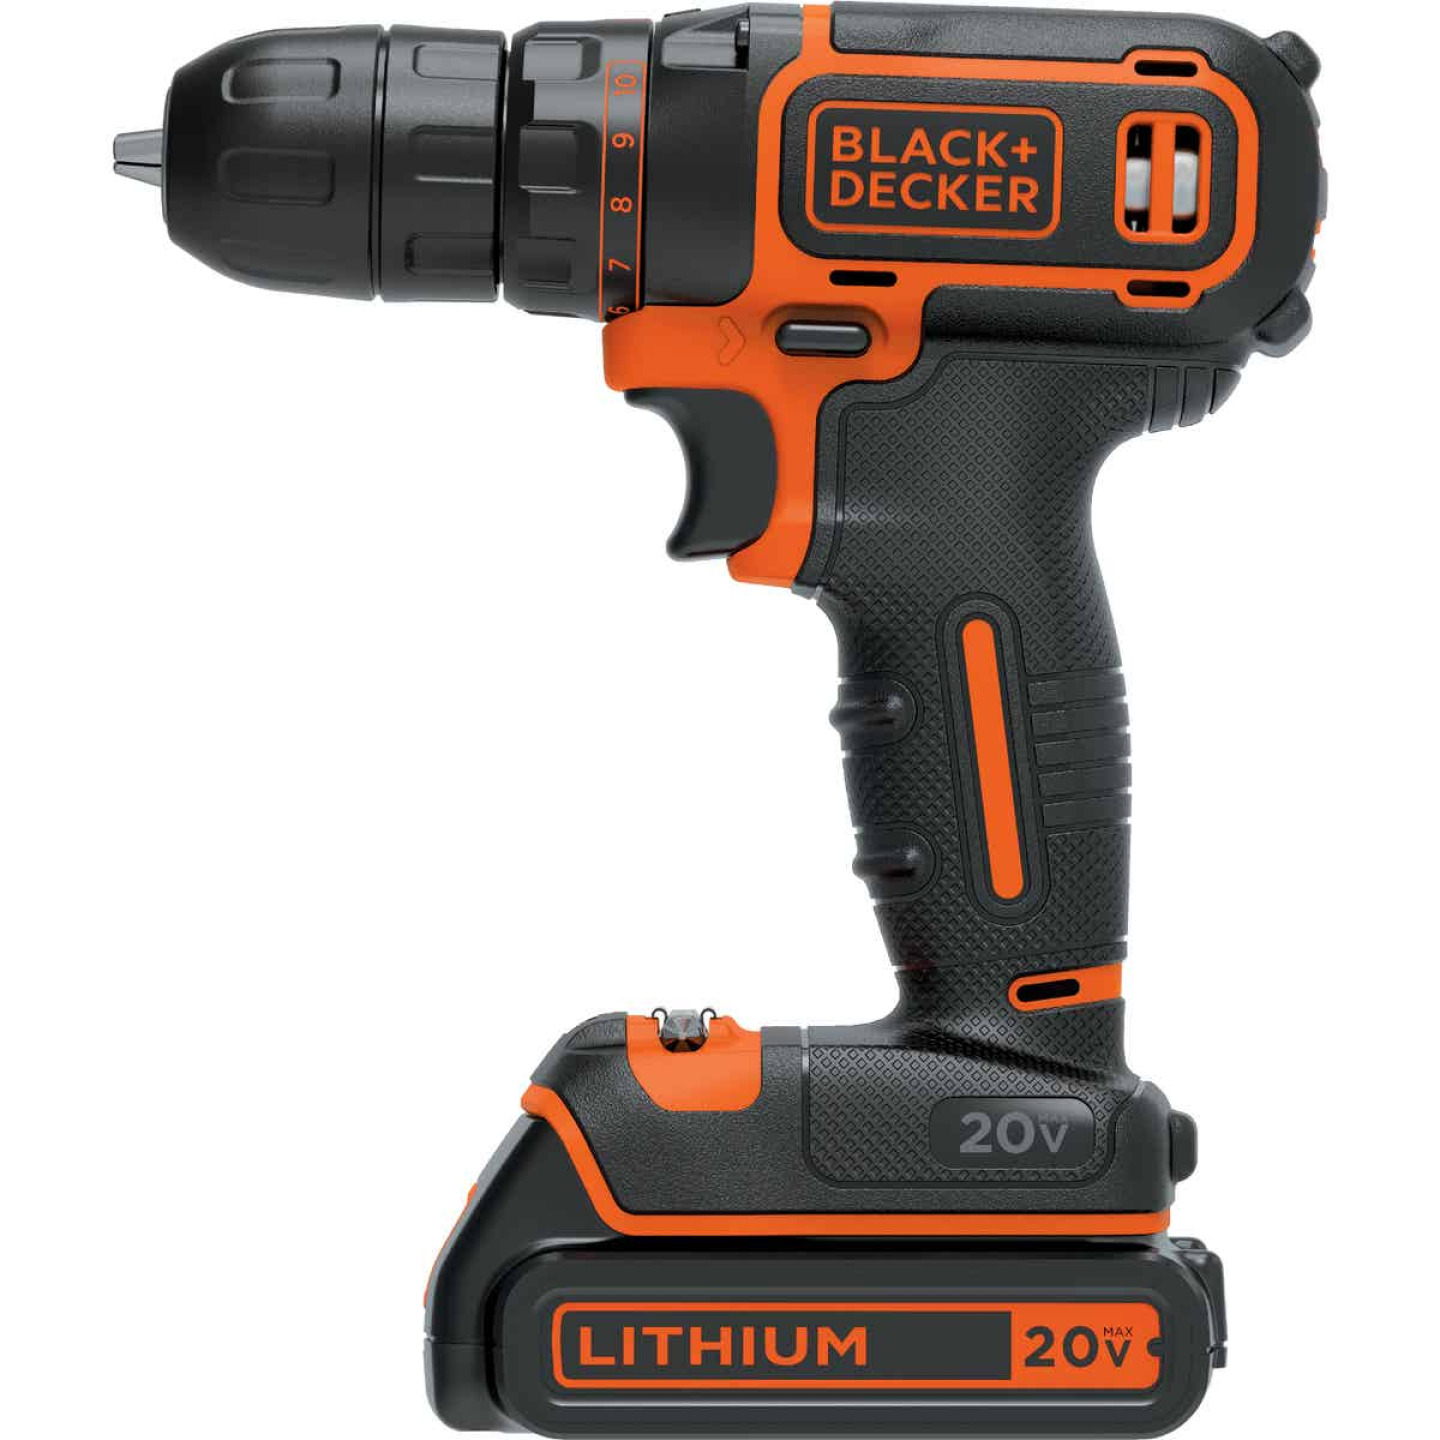 Black & Decker 20 Volt MAX Lithium-Ion 3/8 In. Cordless Drill Kit Image 5